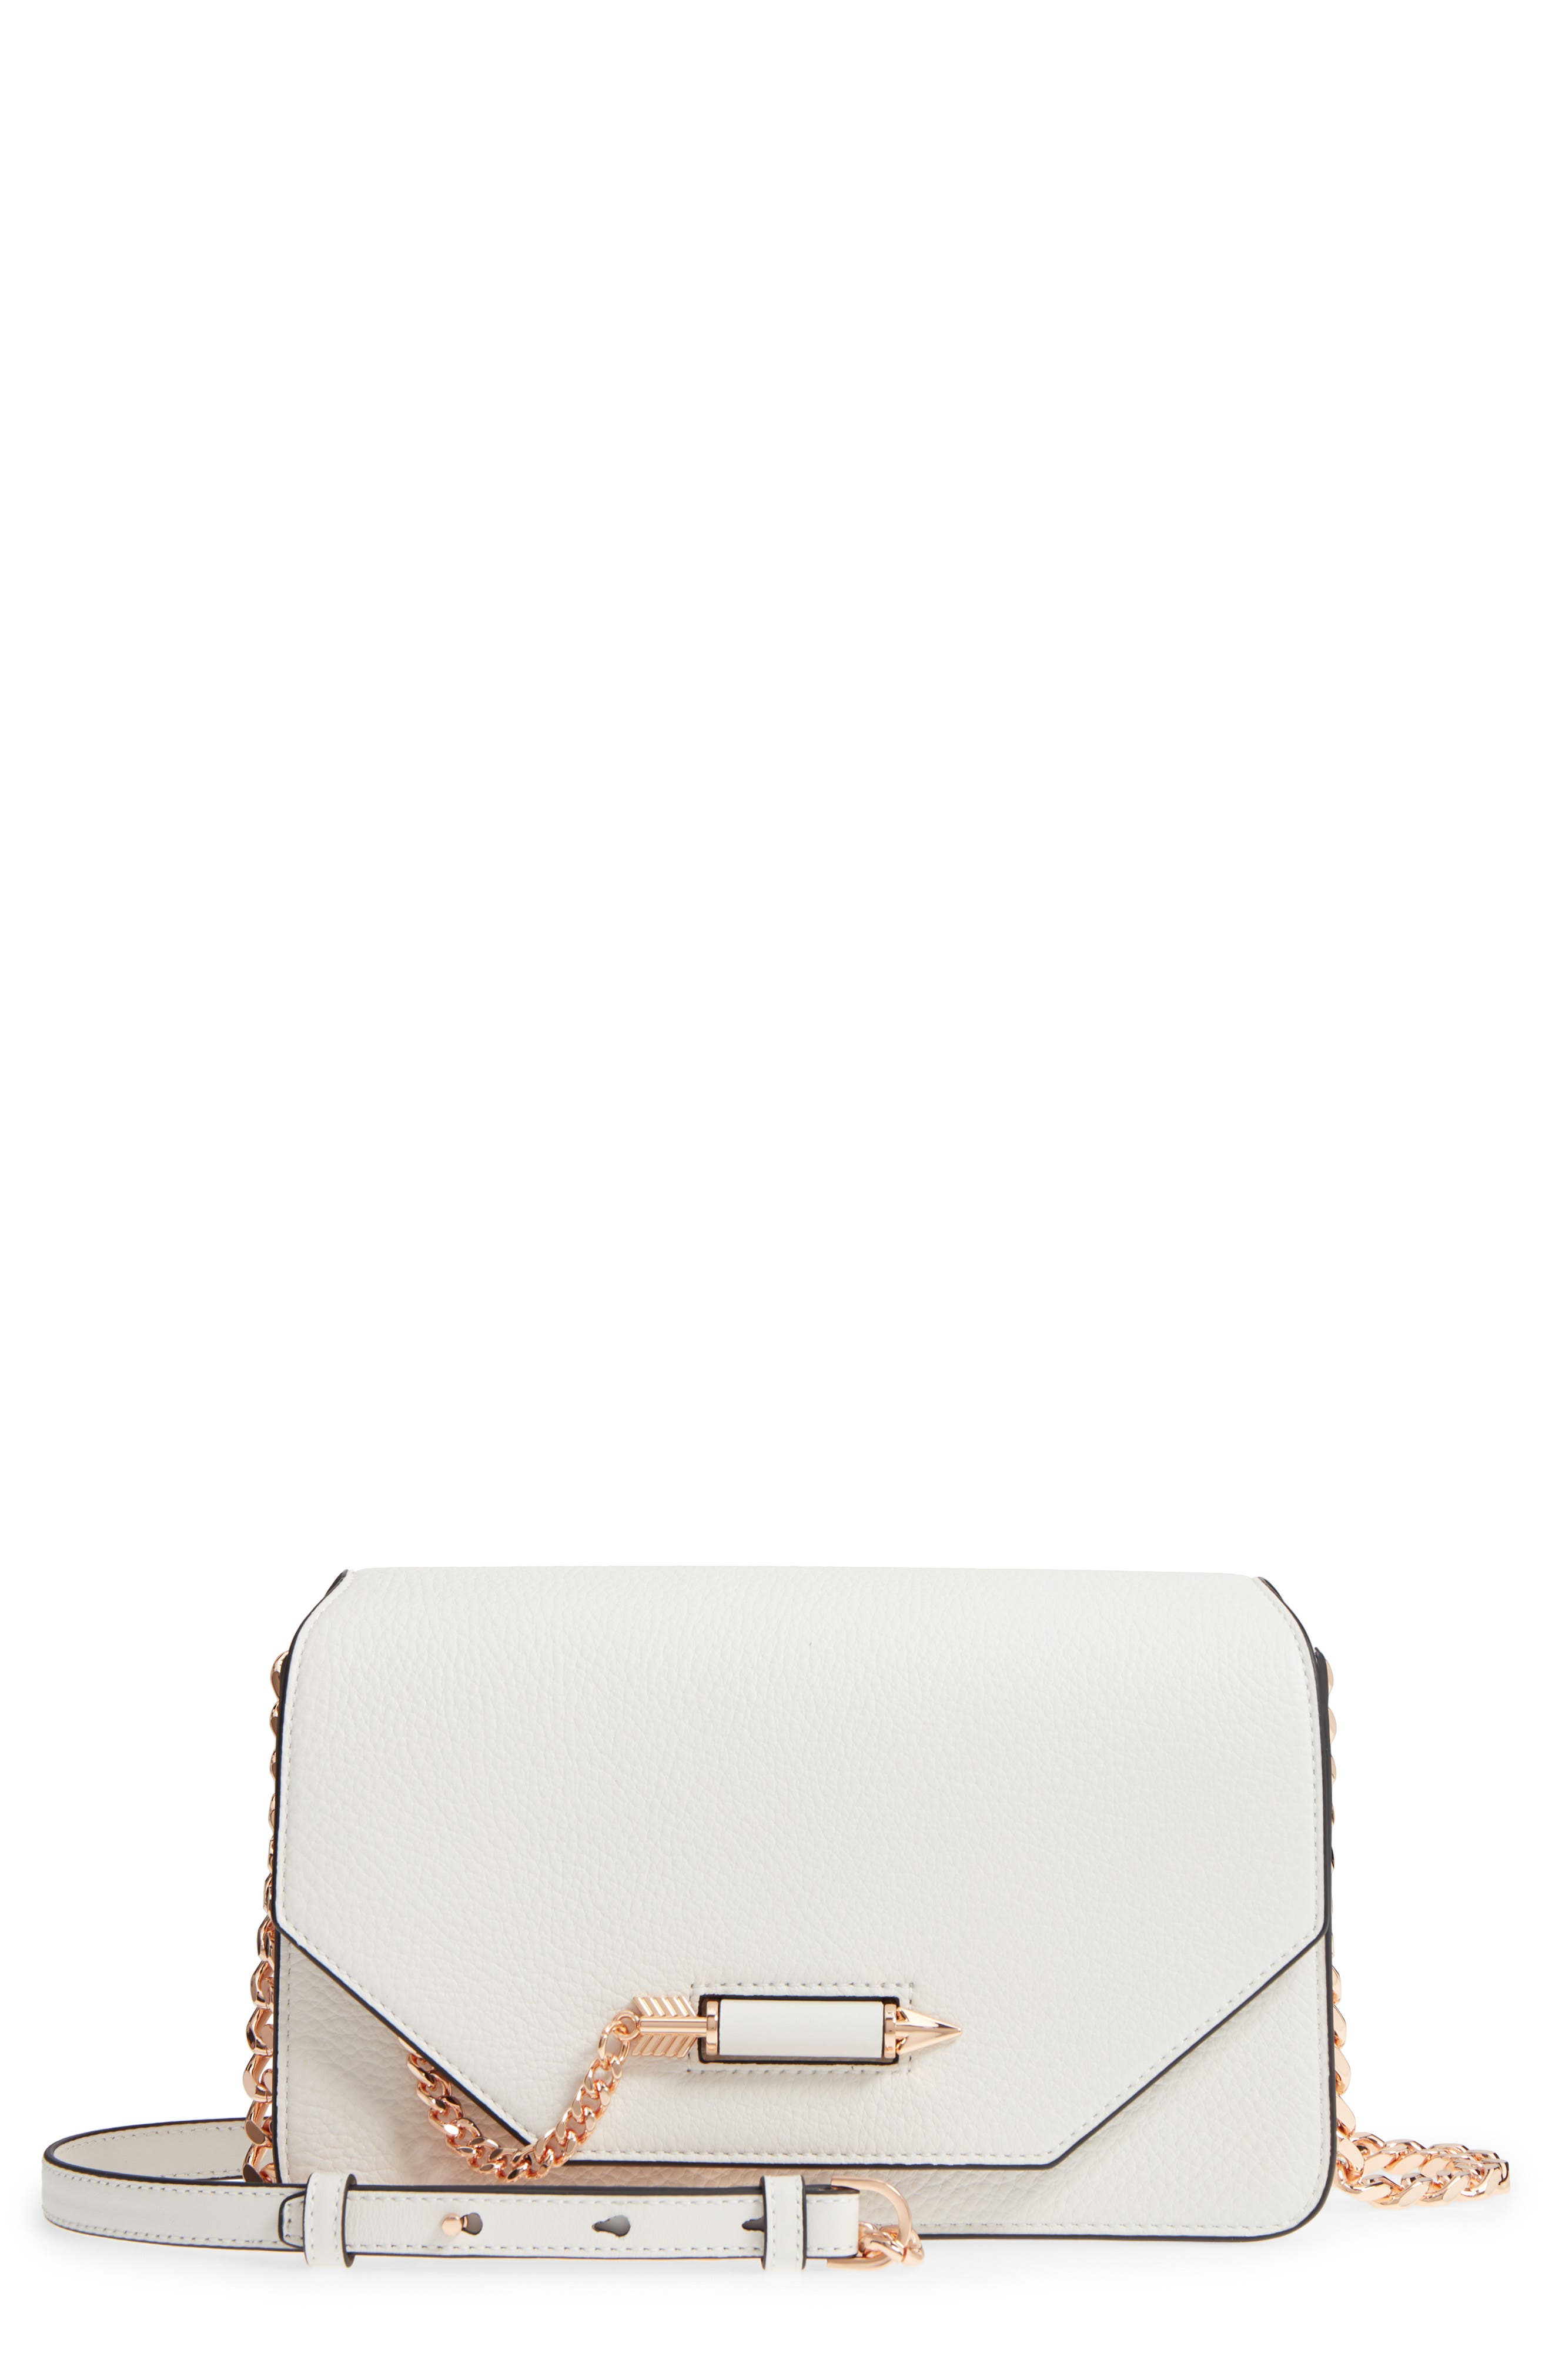 Cortney Nappa Leather Shoulder/Crossbody Bag,                         Main,                         color, WHITE/ ROSE GOLD